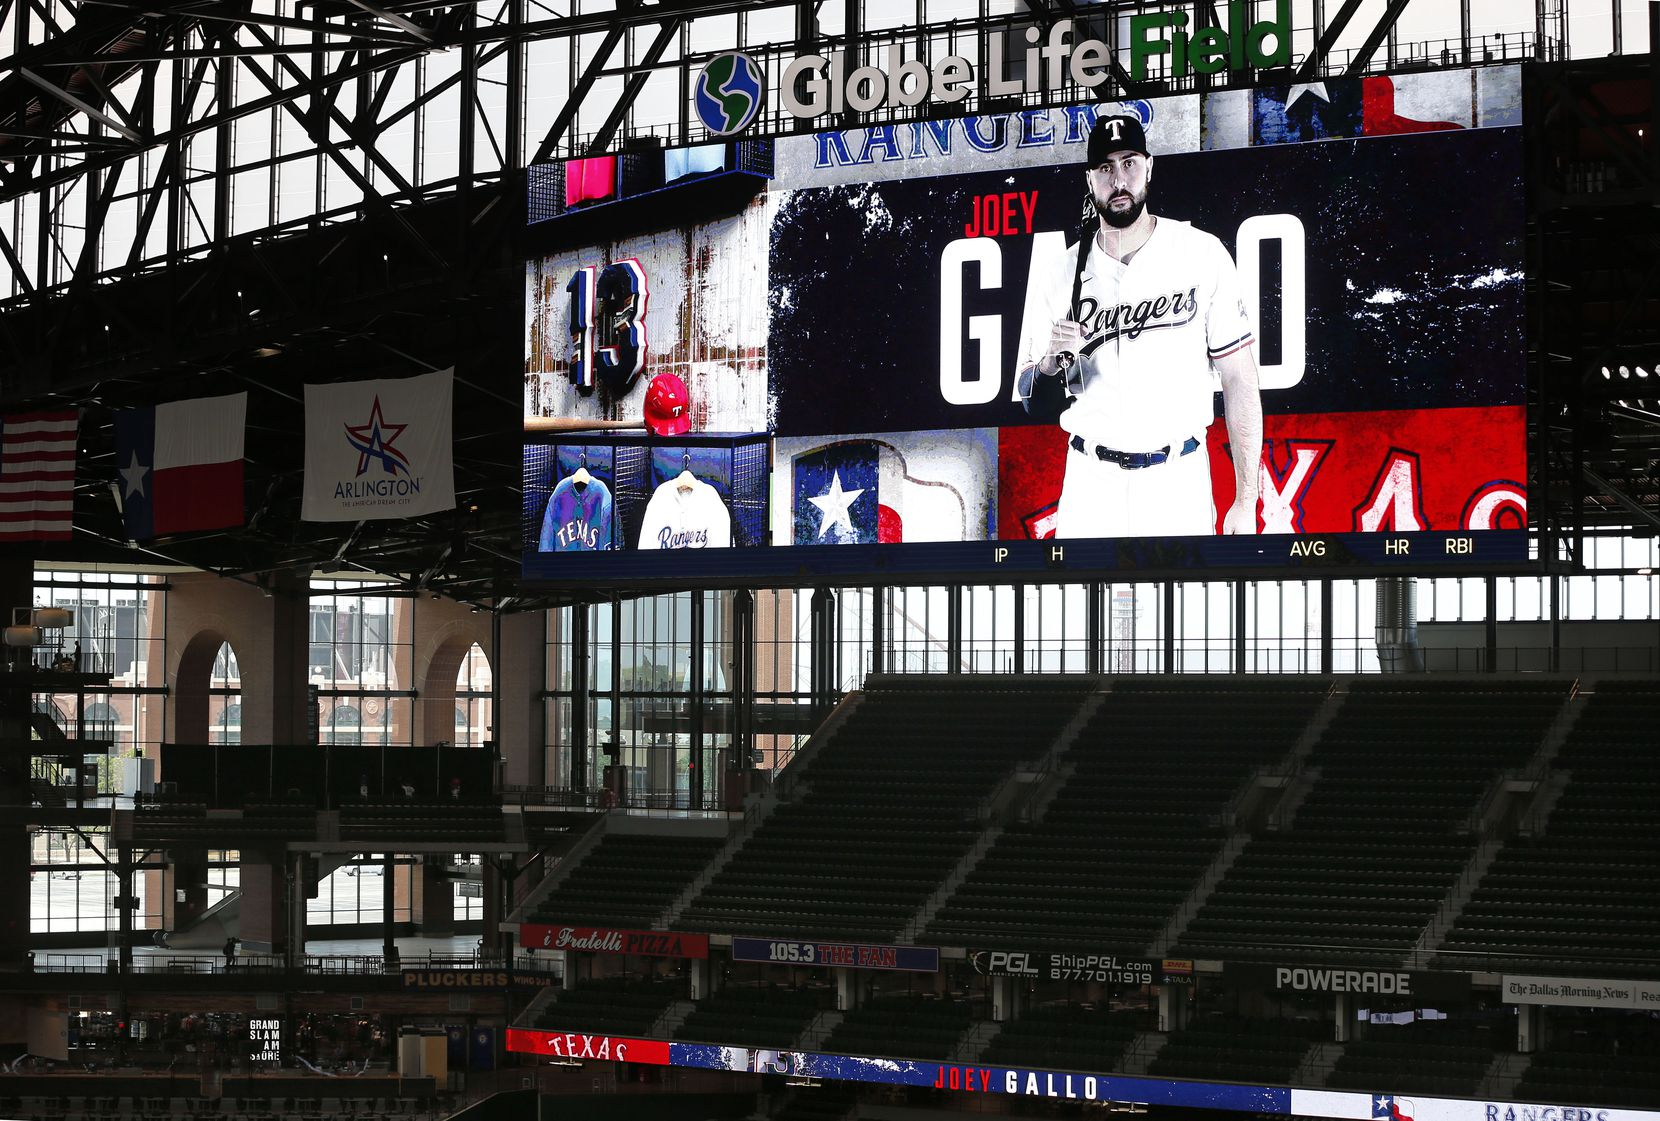 Texas Rangers outfielder Joey Gallo is pictured on the right field video board during Summer Camp at Globe Life Field in Arlington, Texas, Wednesday, July 8, 2020.